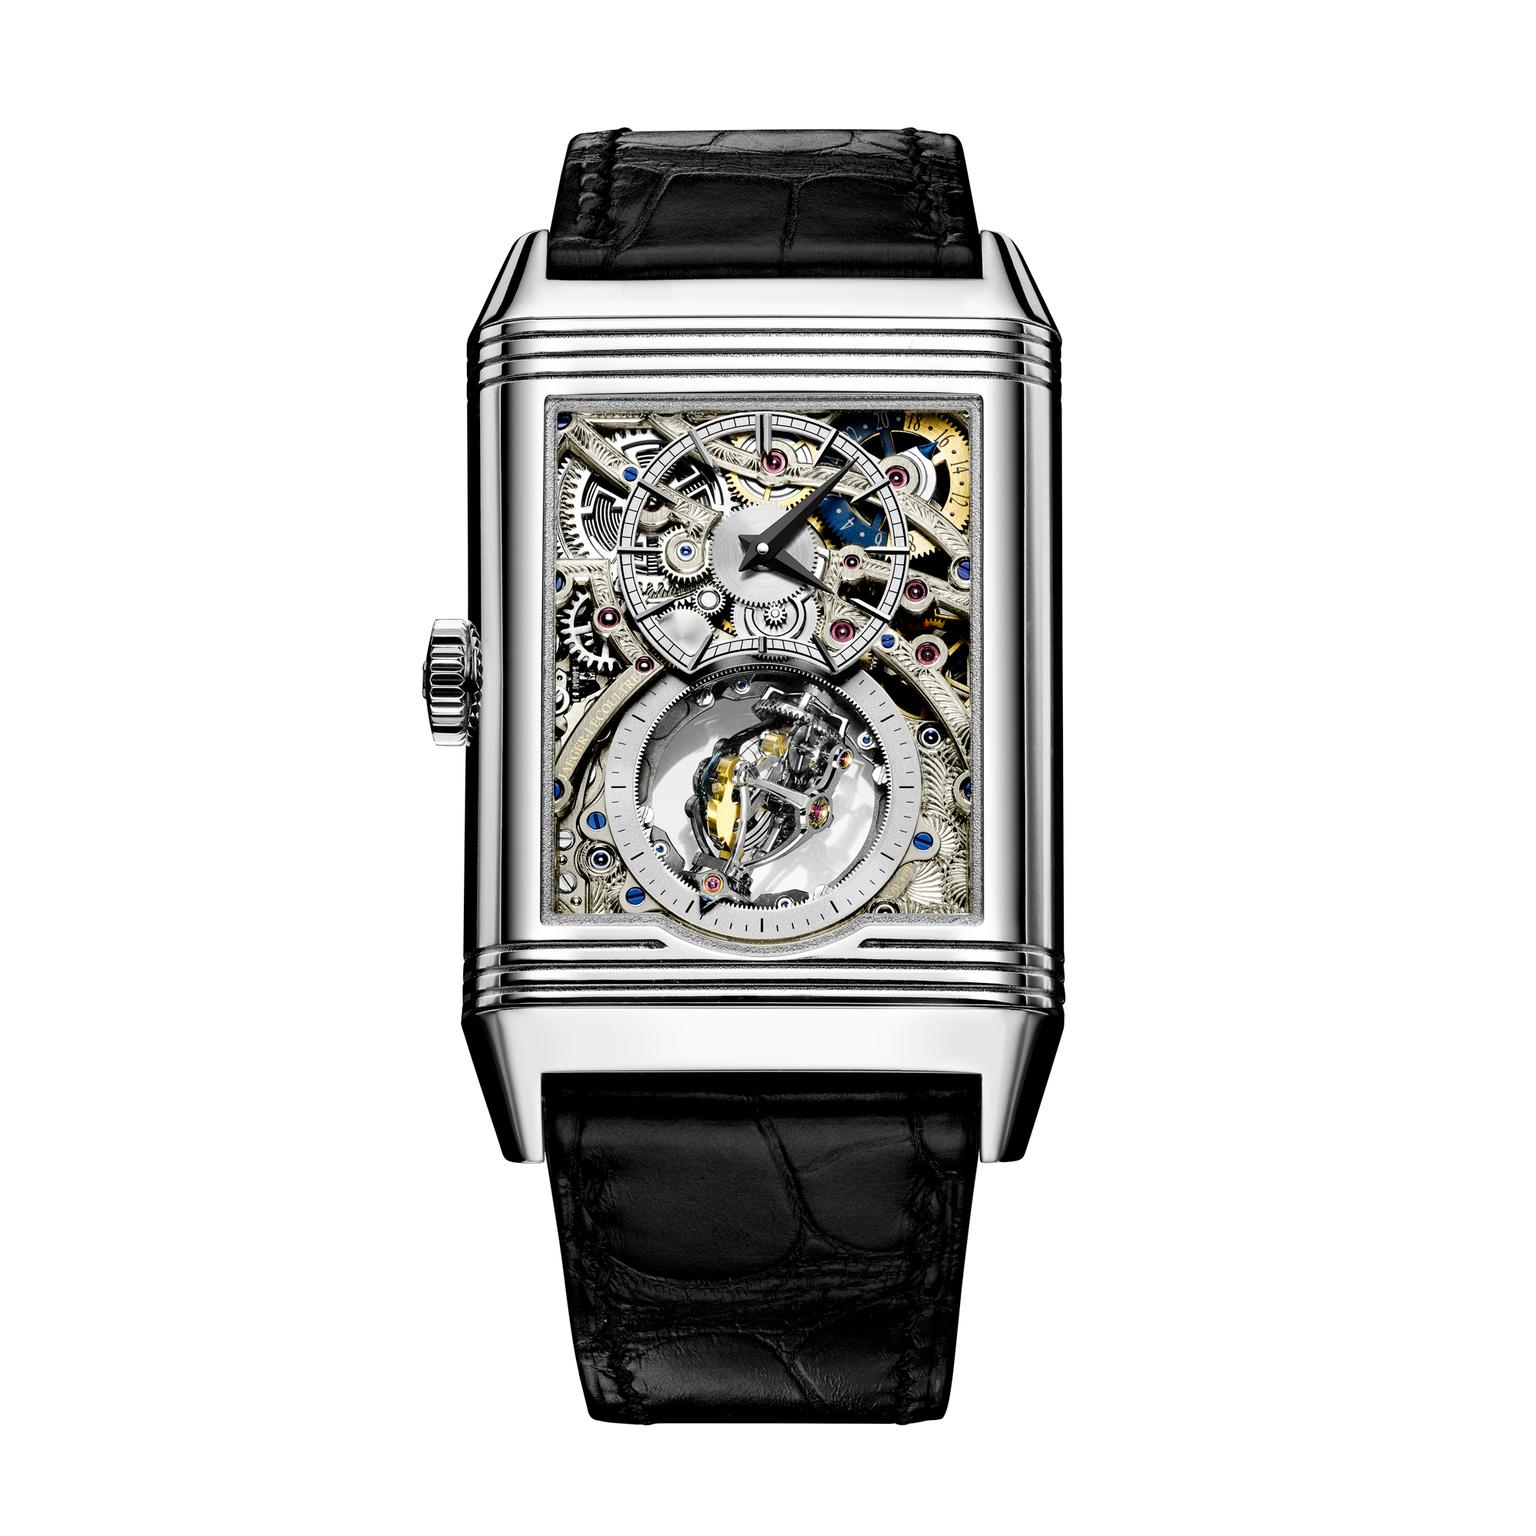 Jaeger-LeCoultre Reverso Tribute Gyrotourbillon watch back